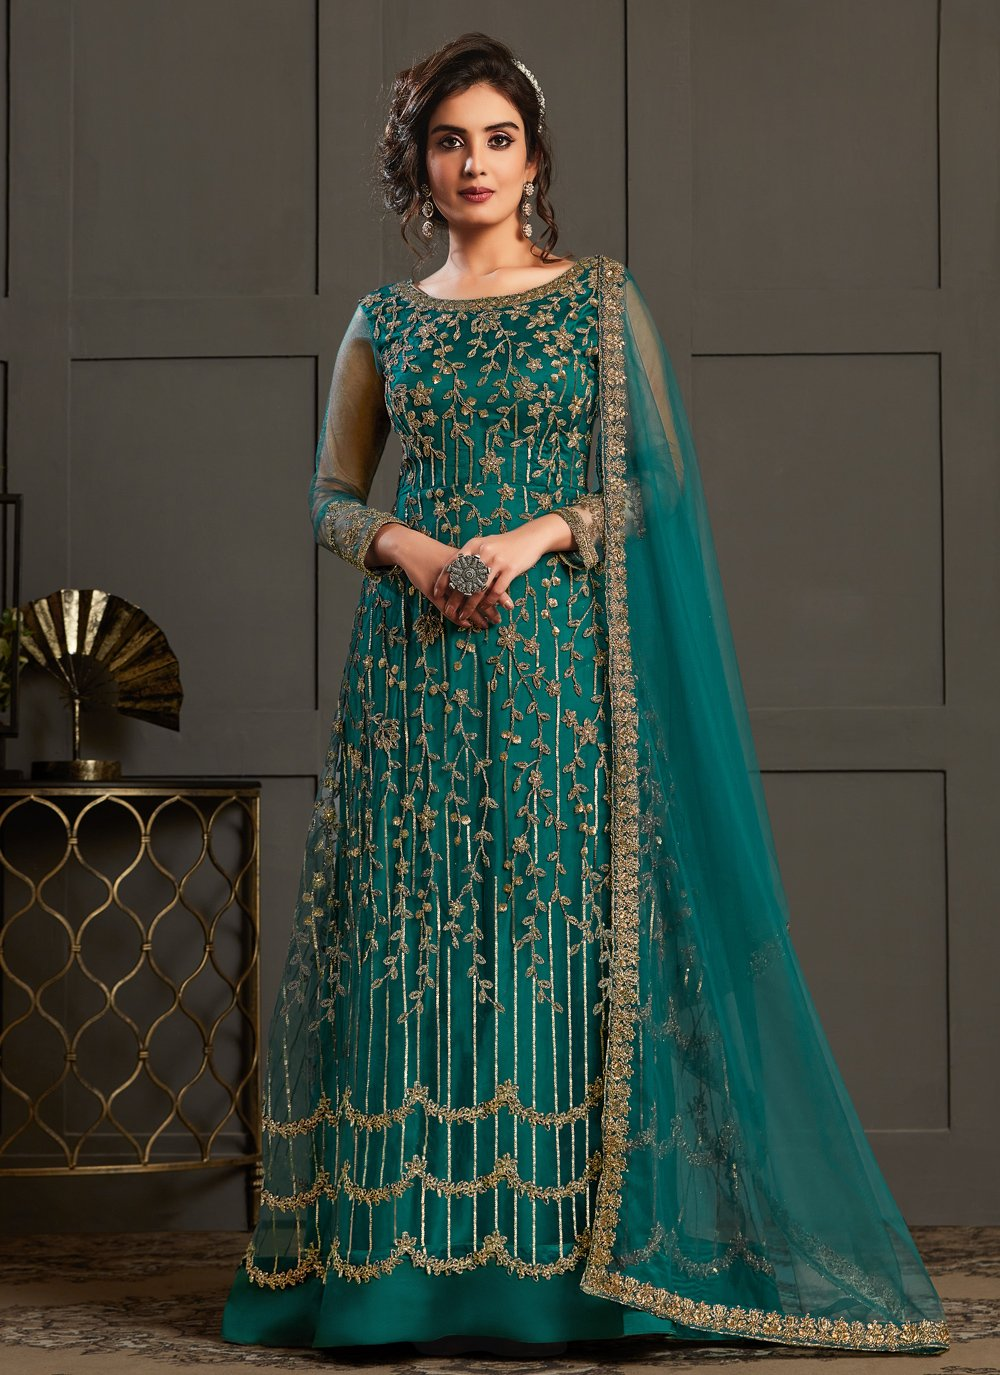 Teal Net Designer Floor Length Salwar Suit